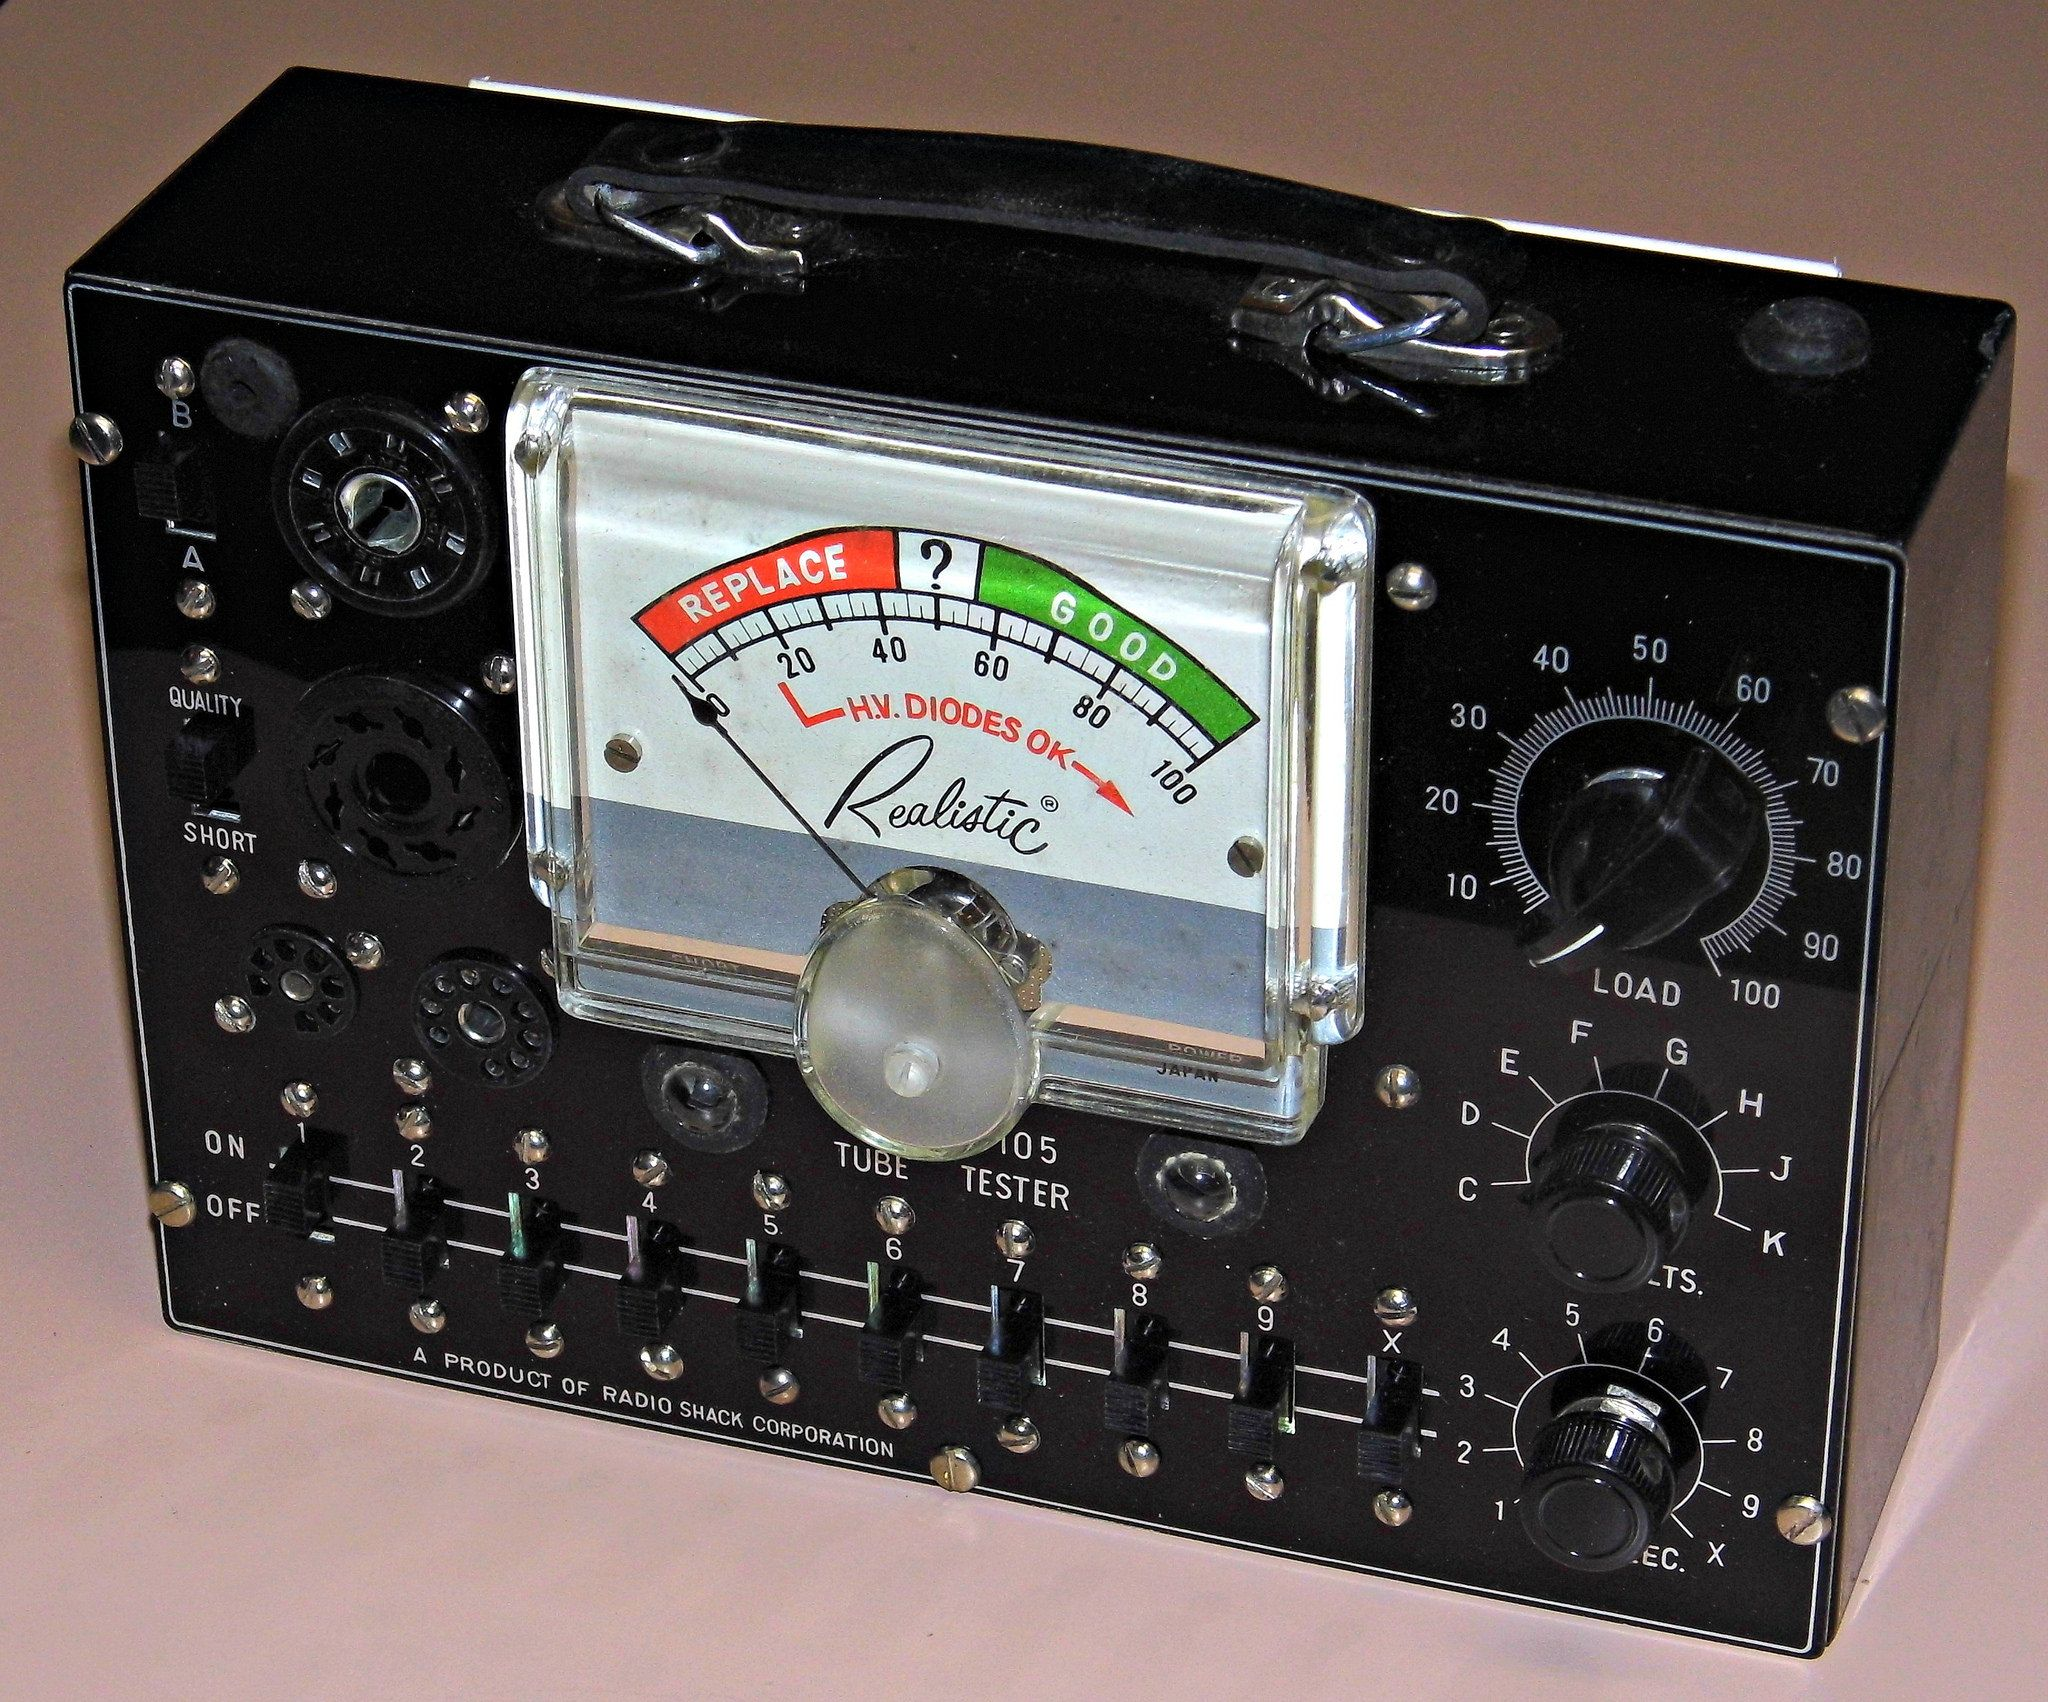 Vintage Realistic Model 105 Tube Tester Sold By Radio Shack Made In Japan Circa 1955 Radio Shack Radio Retro Radios